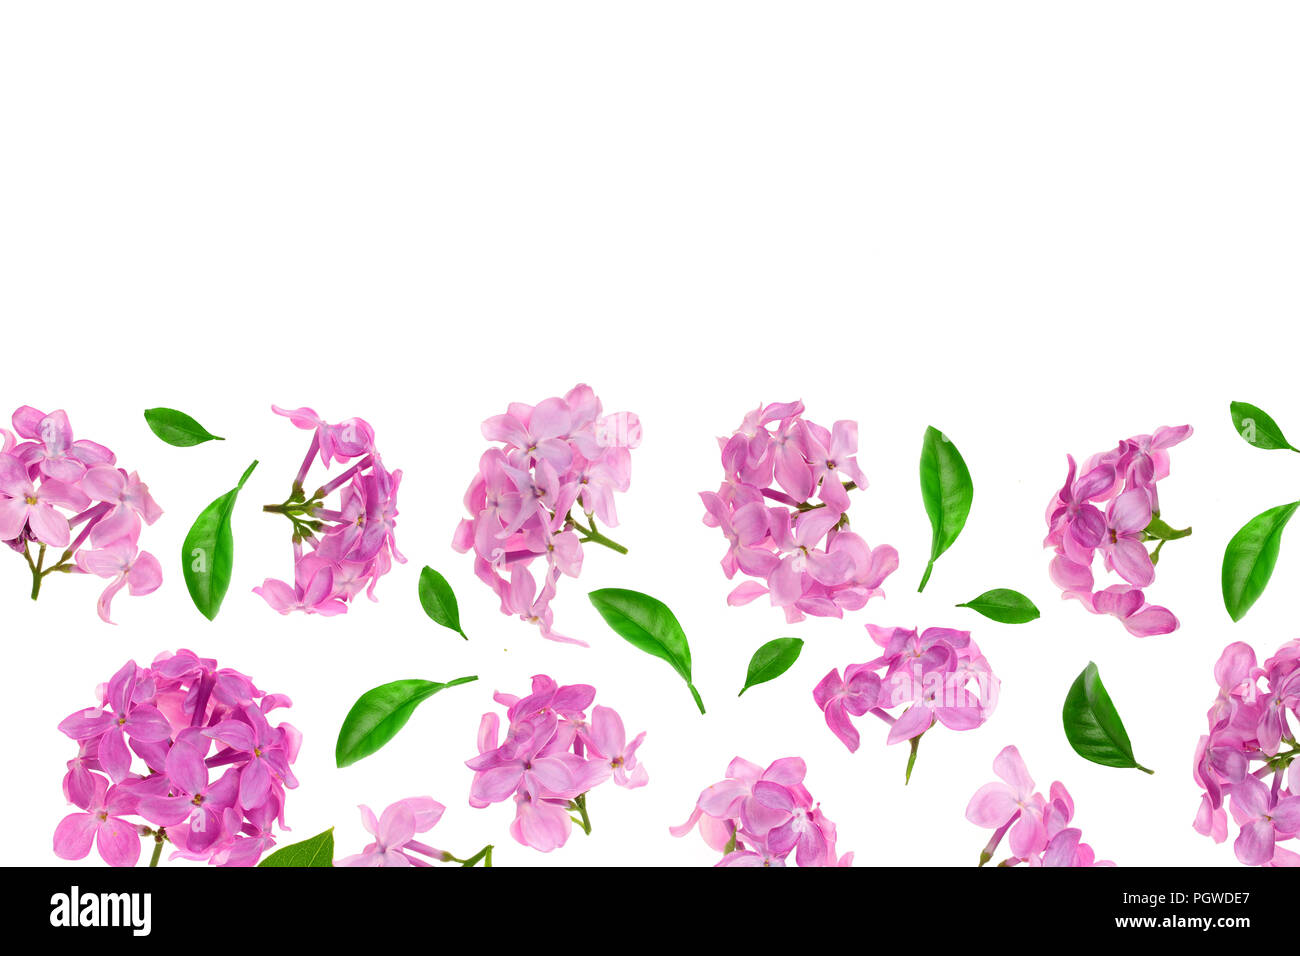 Lilac Flowers Branches And Leaves Isolated On White Background With